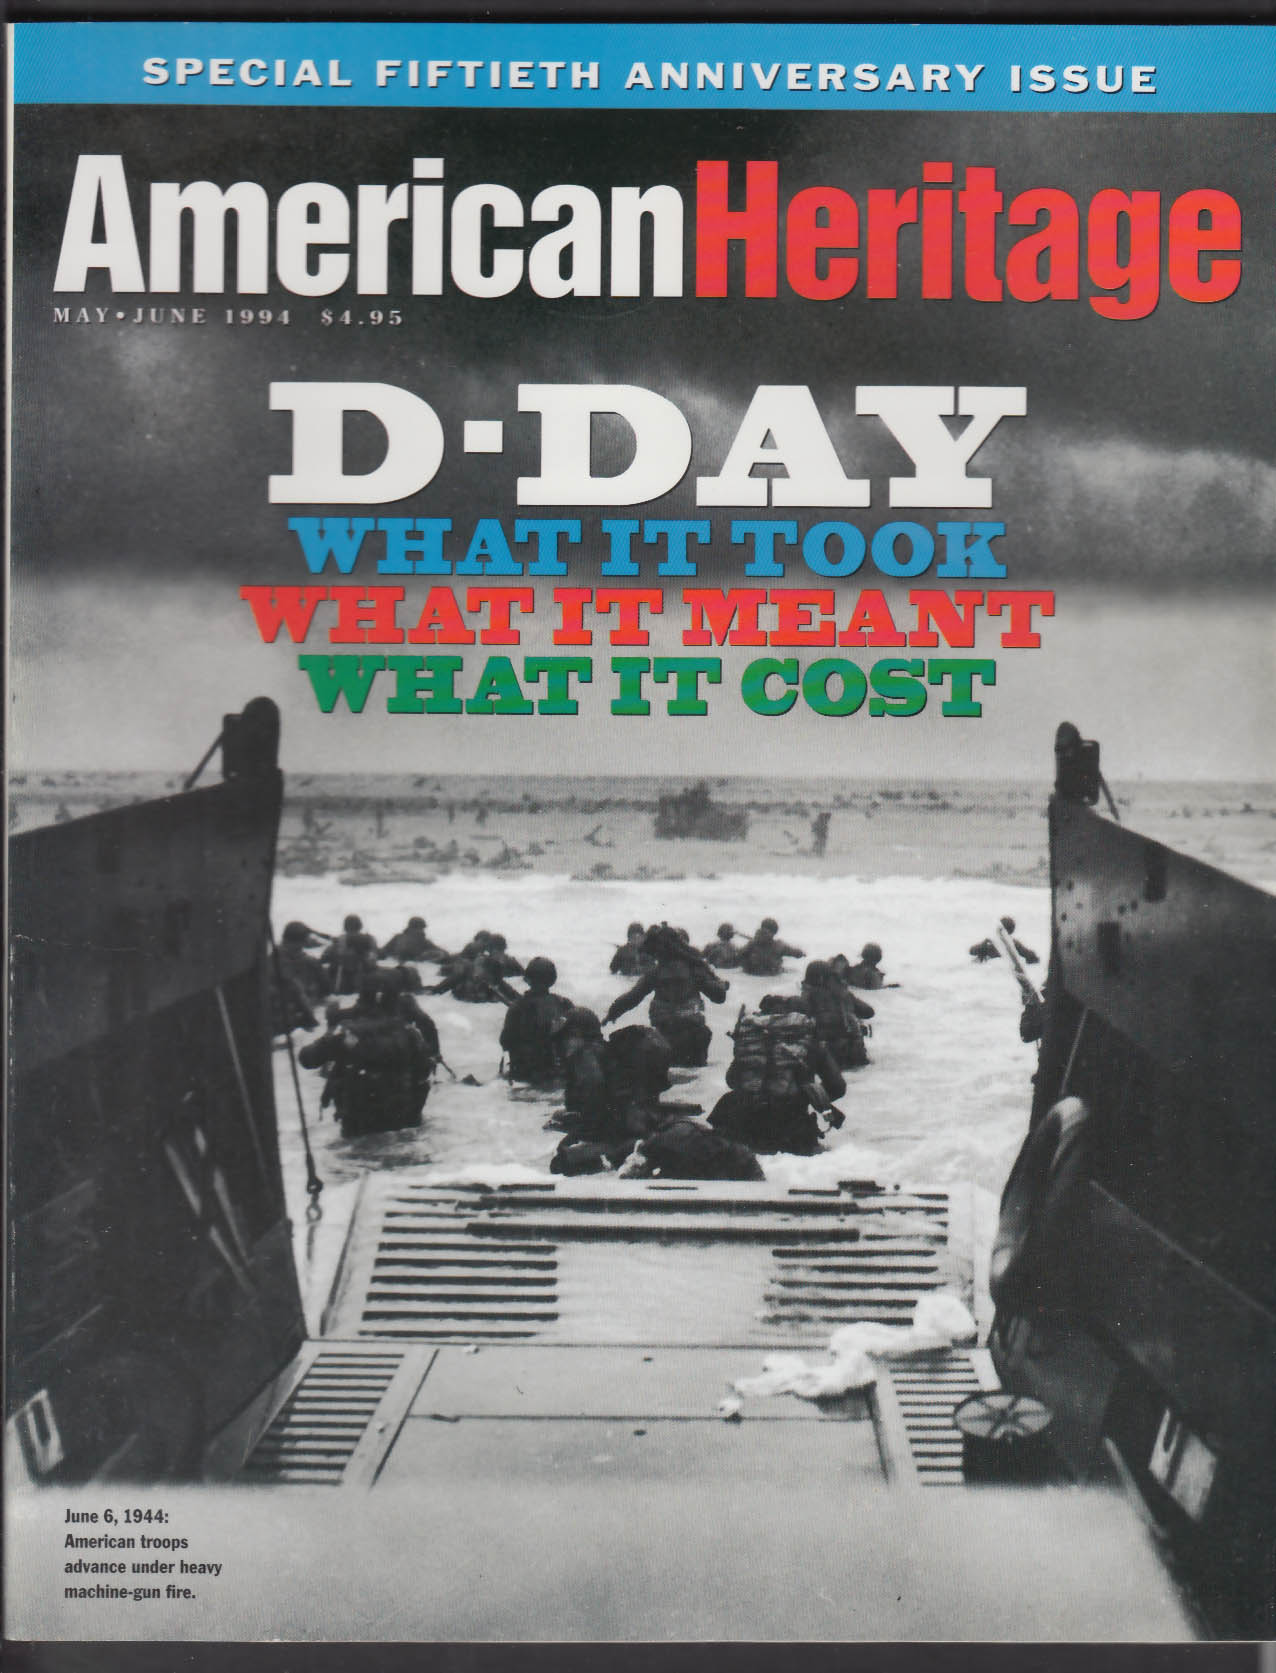 AMERICAN HERITAGE Special 50th Anniversary Issue D-Day Chaplain Kidder 5-6 1994